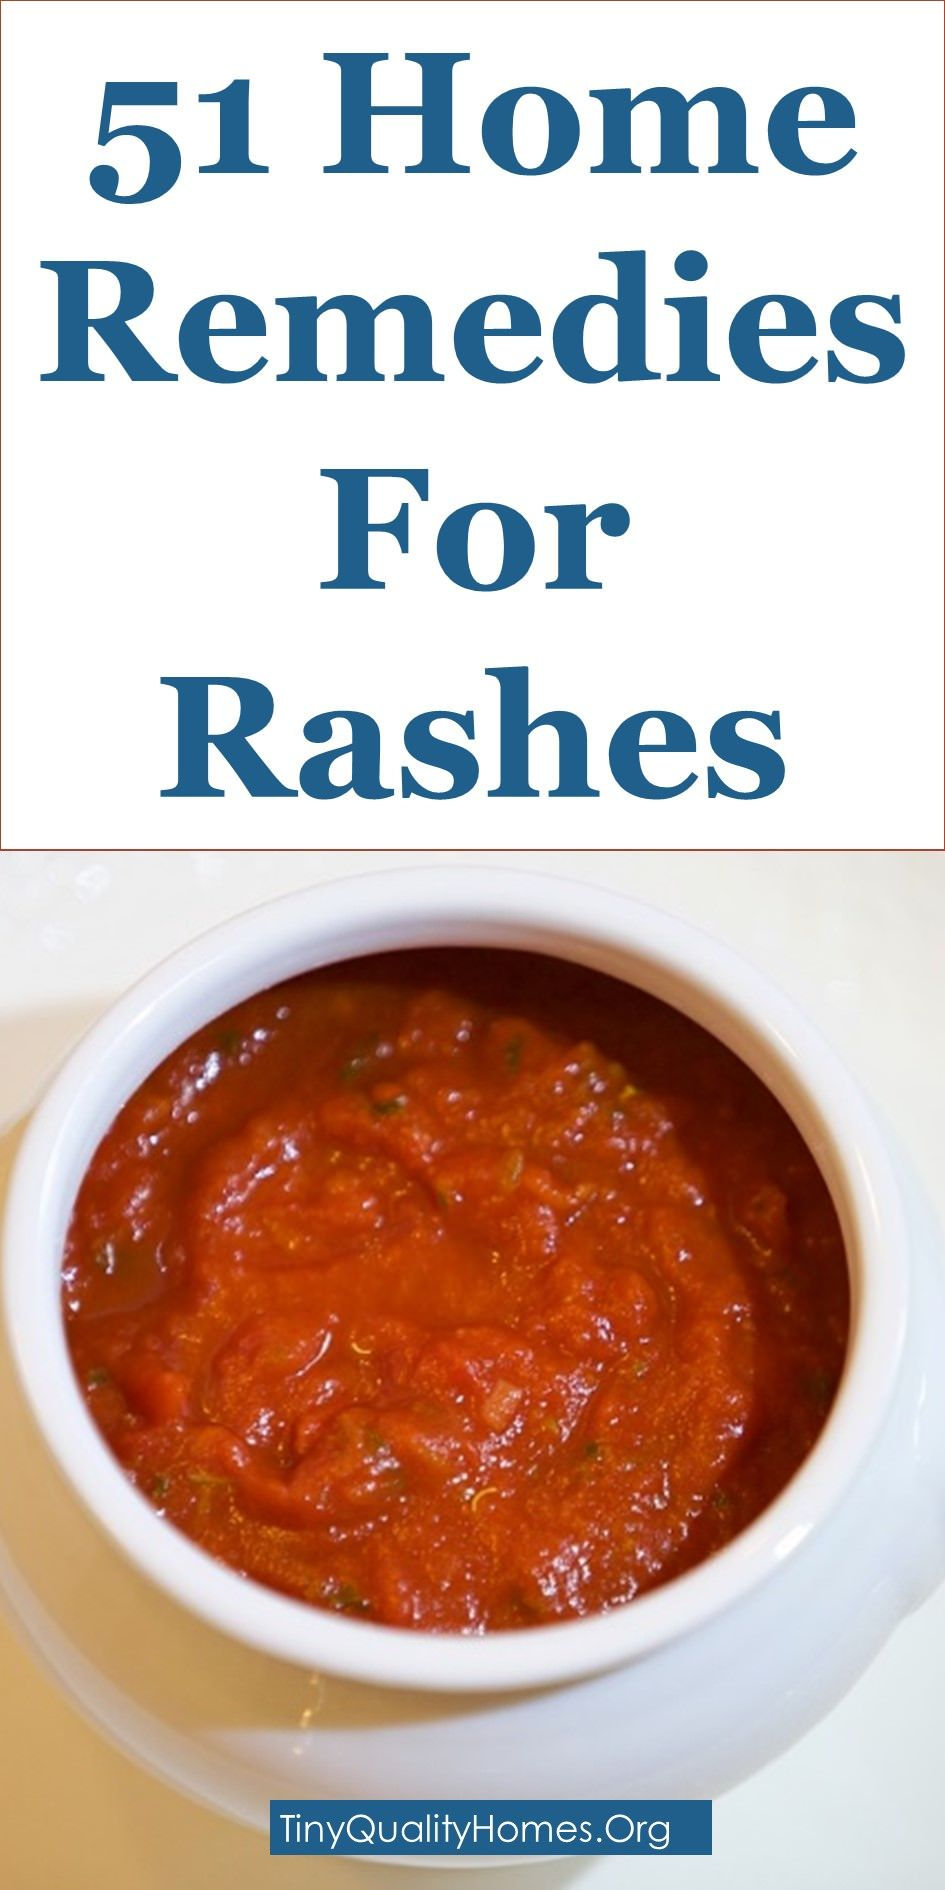 51 Home Remedies For Treating Rashes On Face And Body | rashes